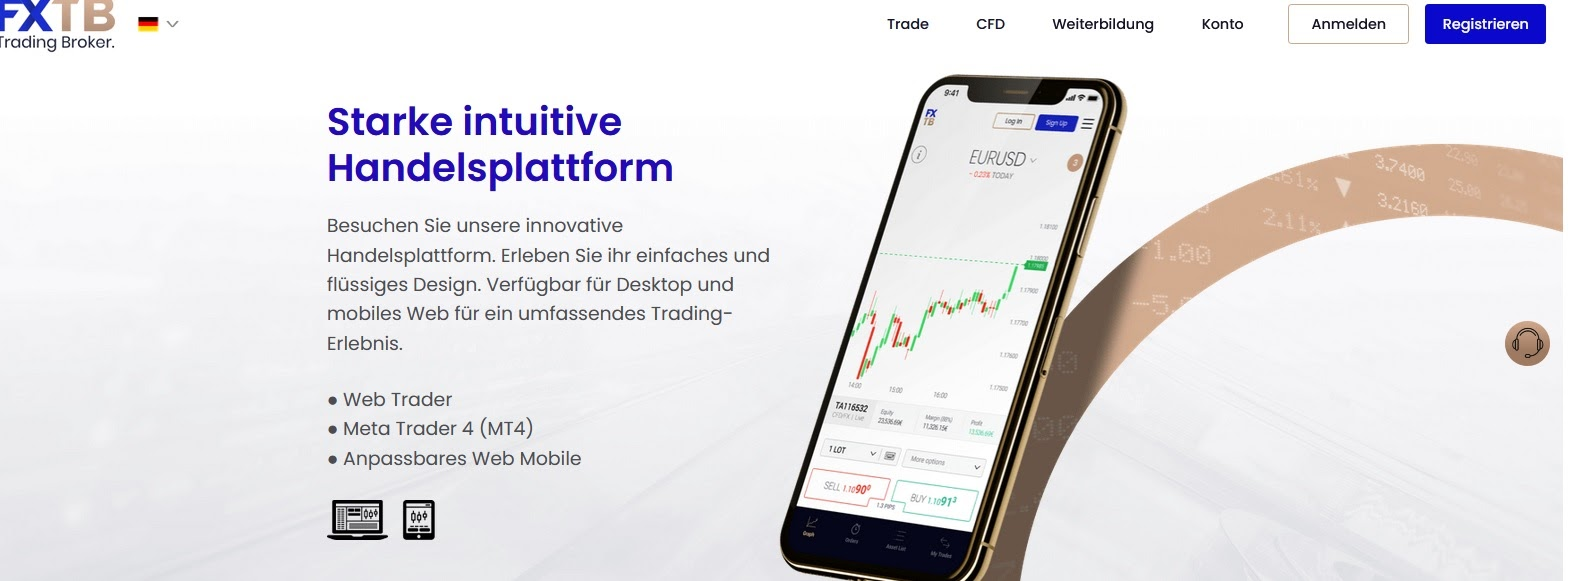 FXTB trading platform briefly explained